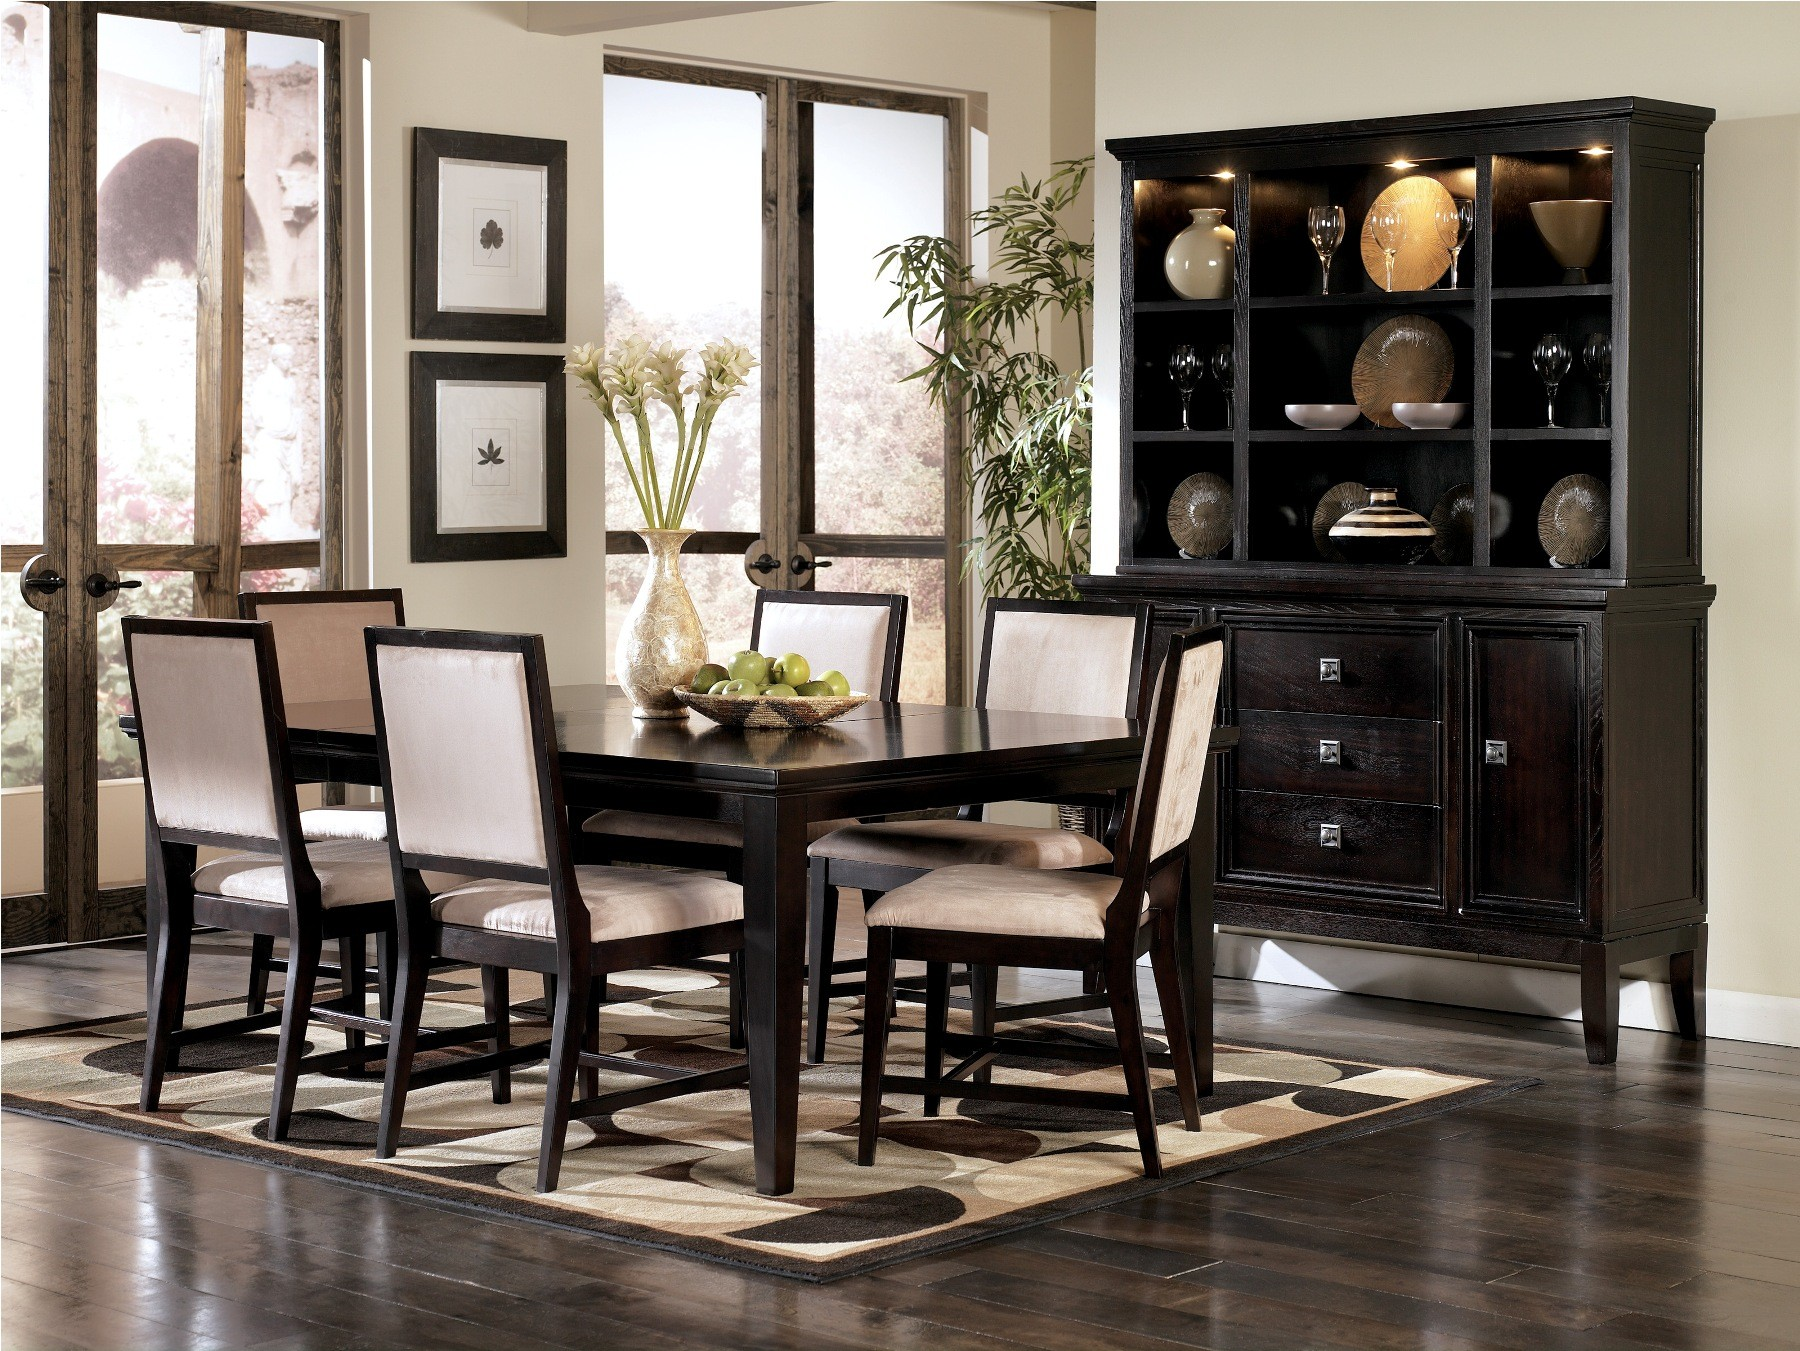 Ashley Furniture Tanshire Dining Room Set Suitable With Ashley Furniture 10 Pc Dining Room Set W China Cabinet Ashley Furniture Dining Room Sets Inspiration Home Magazine